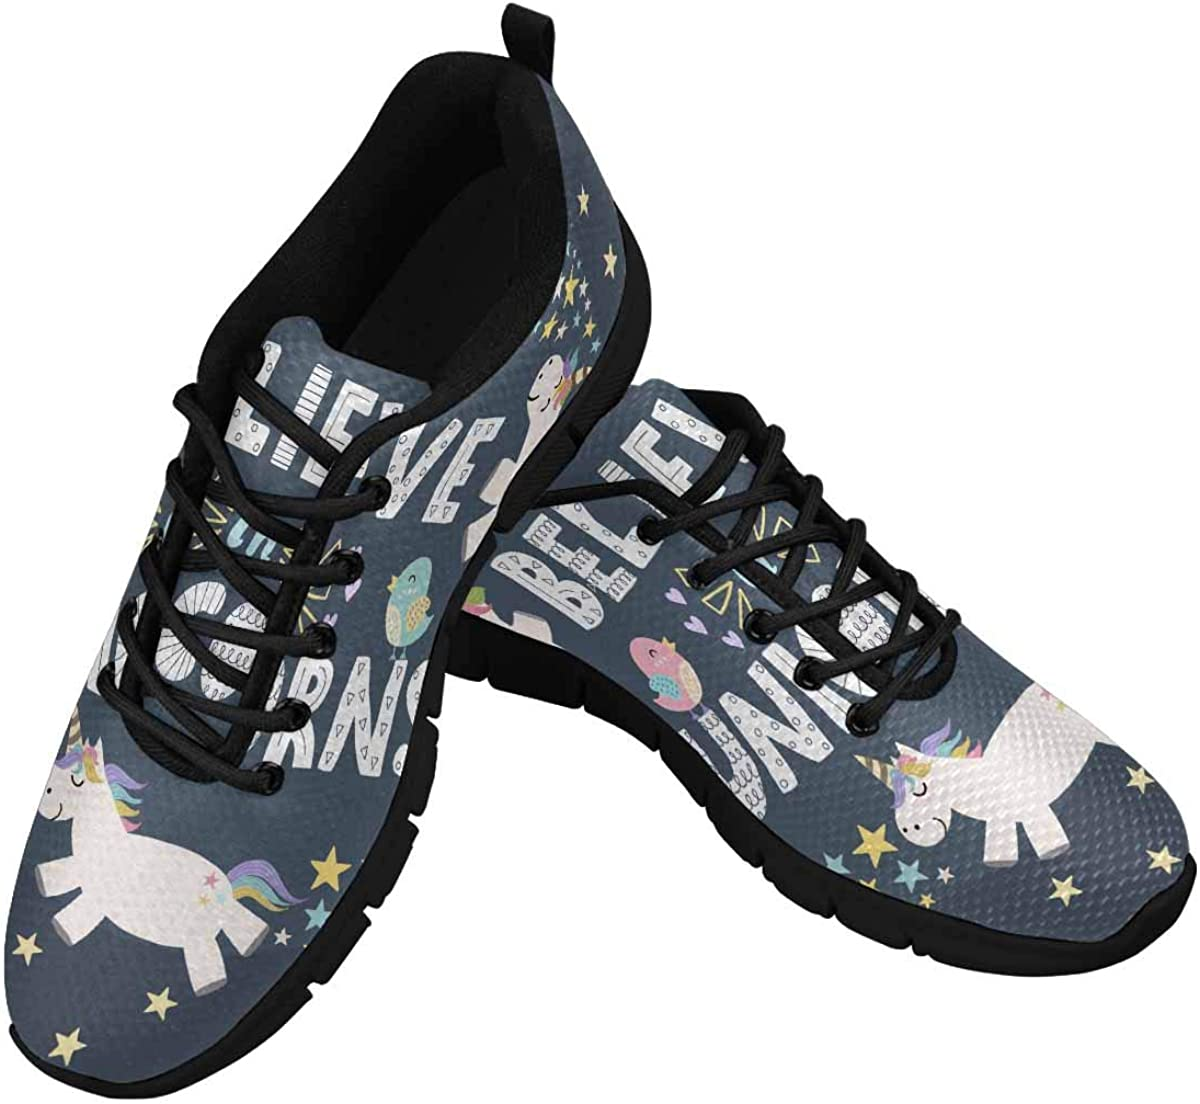 InterestPrint Believe in Unicorns Cute Women's Running Shoes Mesh Breathable Sports Casual Shoes